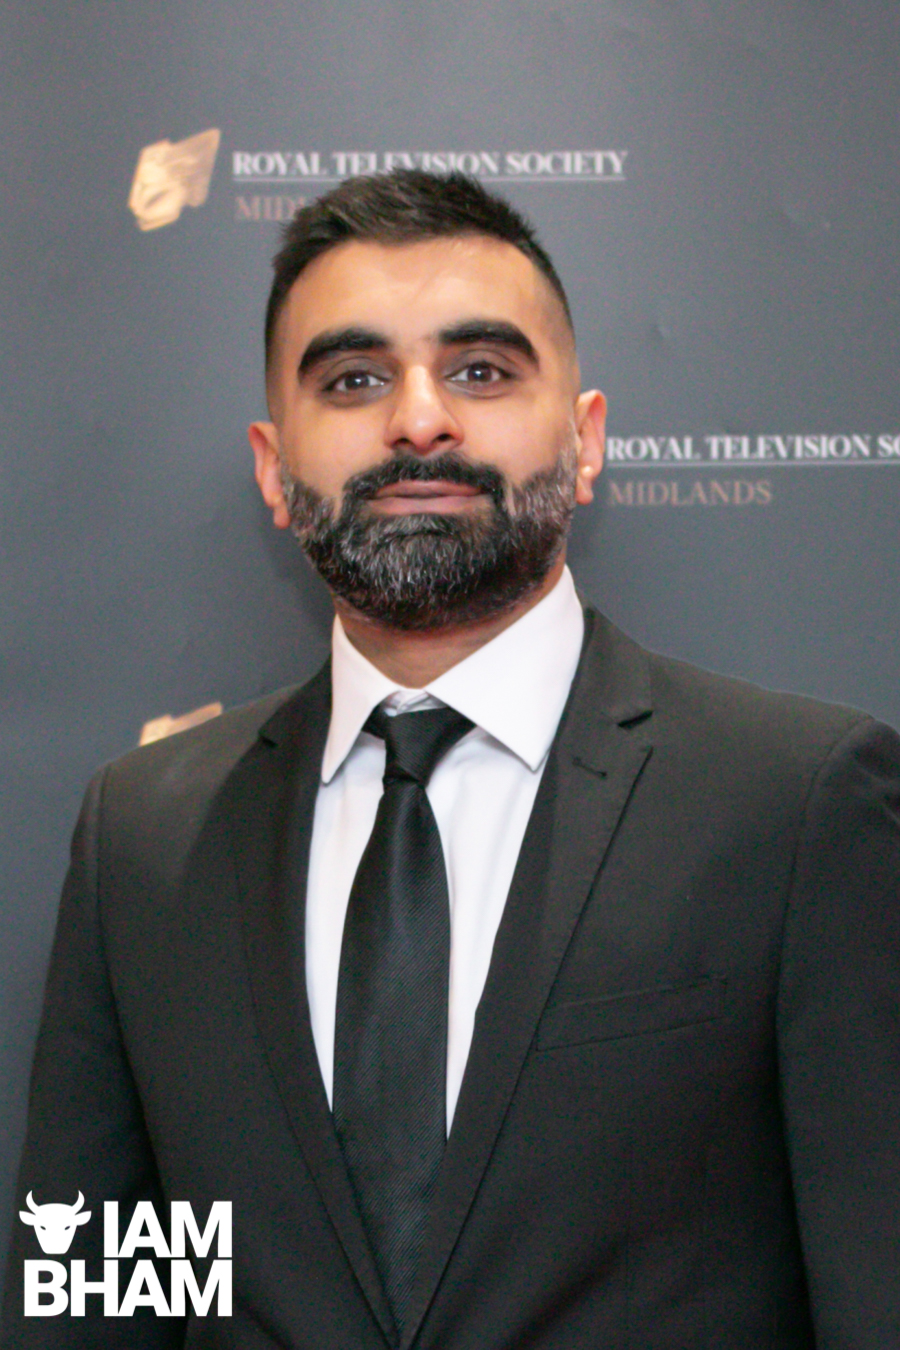 Stars on the red carpet at the Royal Television Society Midlands Awards, in Birmingham. UK. 29th November 2019 Tez Ilyas from Man Like Mobeen and Tez O'Clock Show